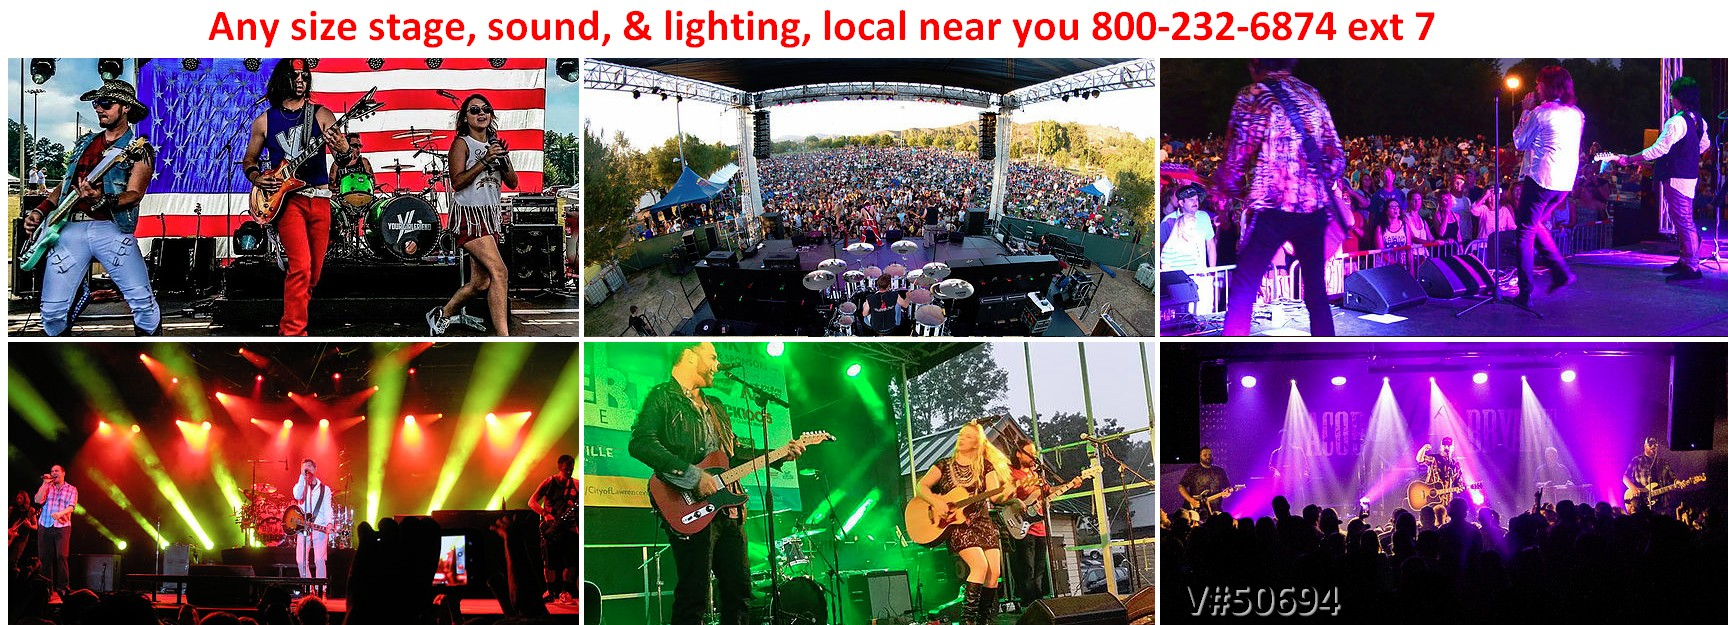 concert stage audio video lighting production shows